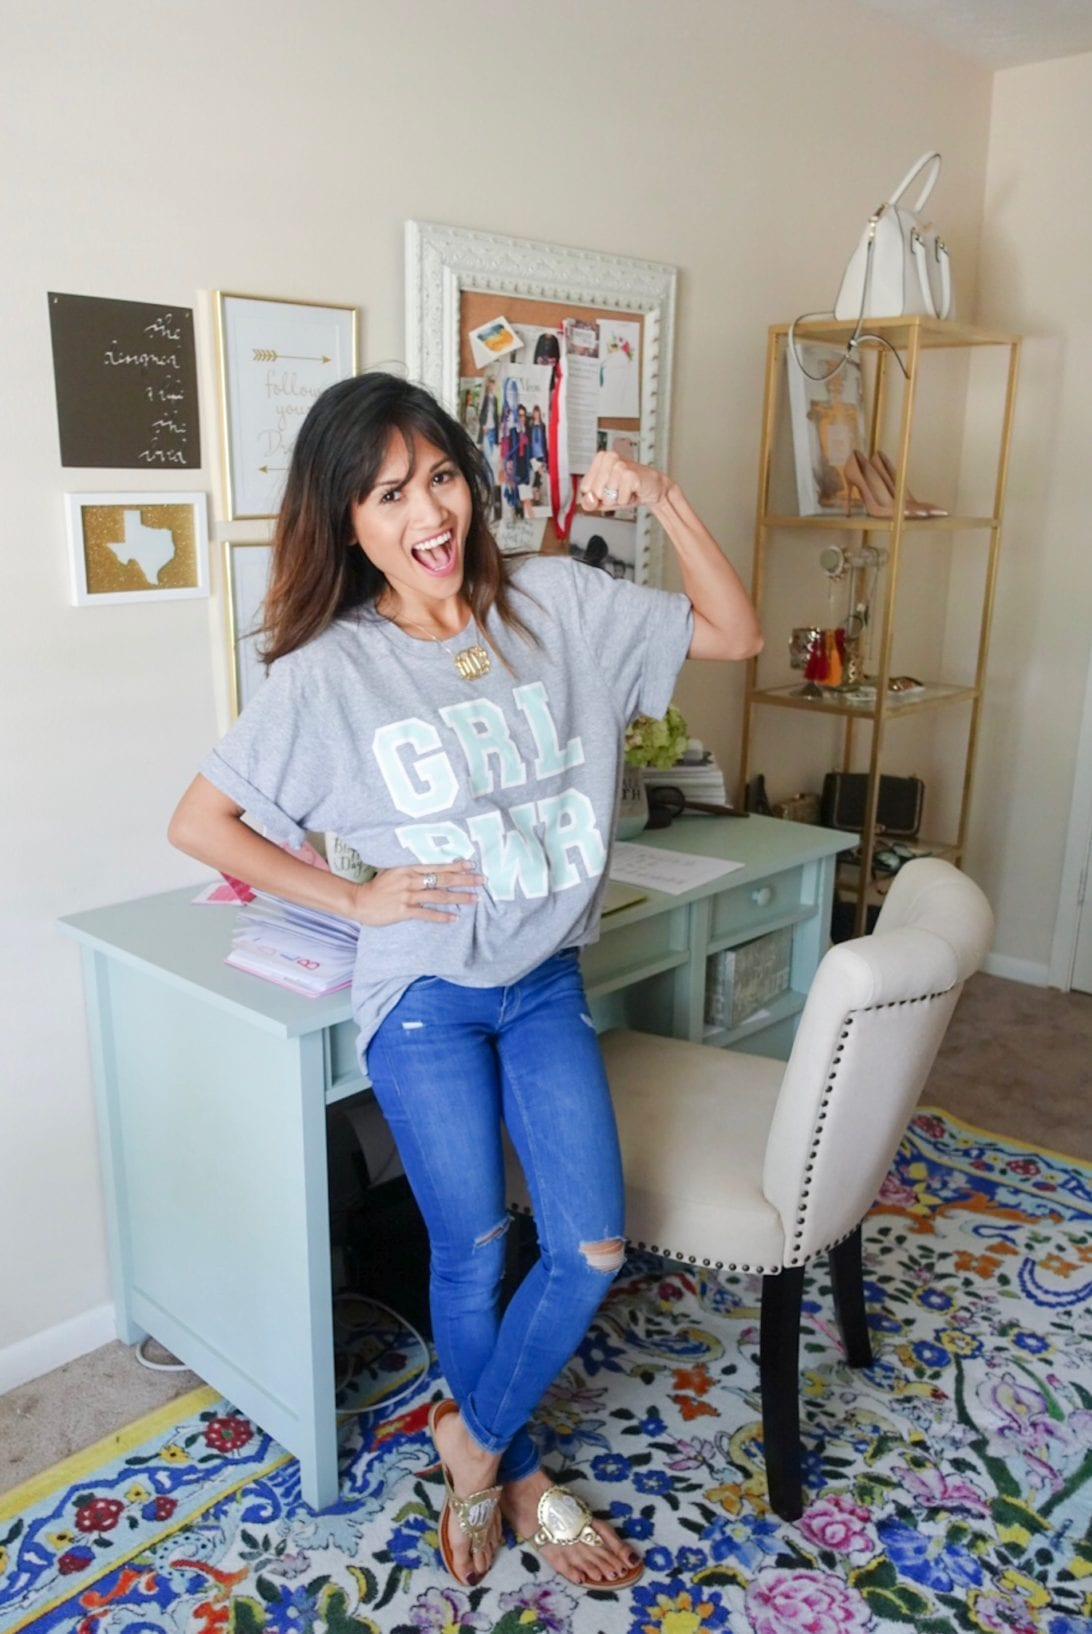 Confidence Tips For the Directions of Your Dreams by Houston blogger Dawn P. Darnell